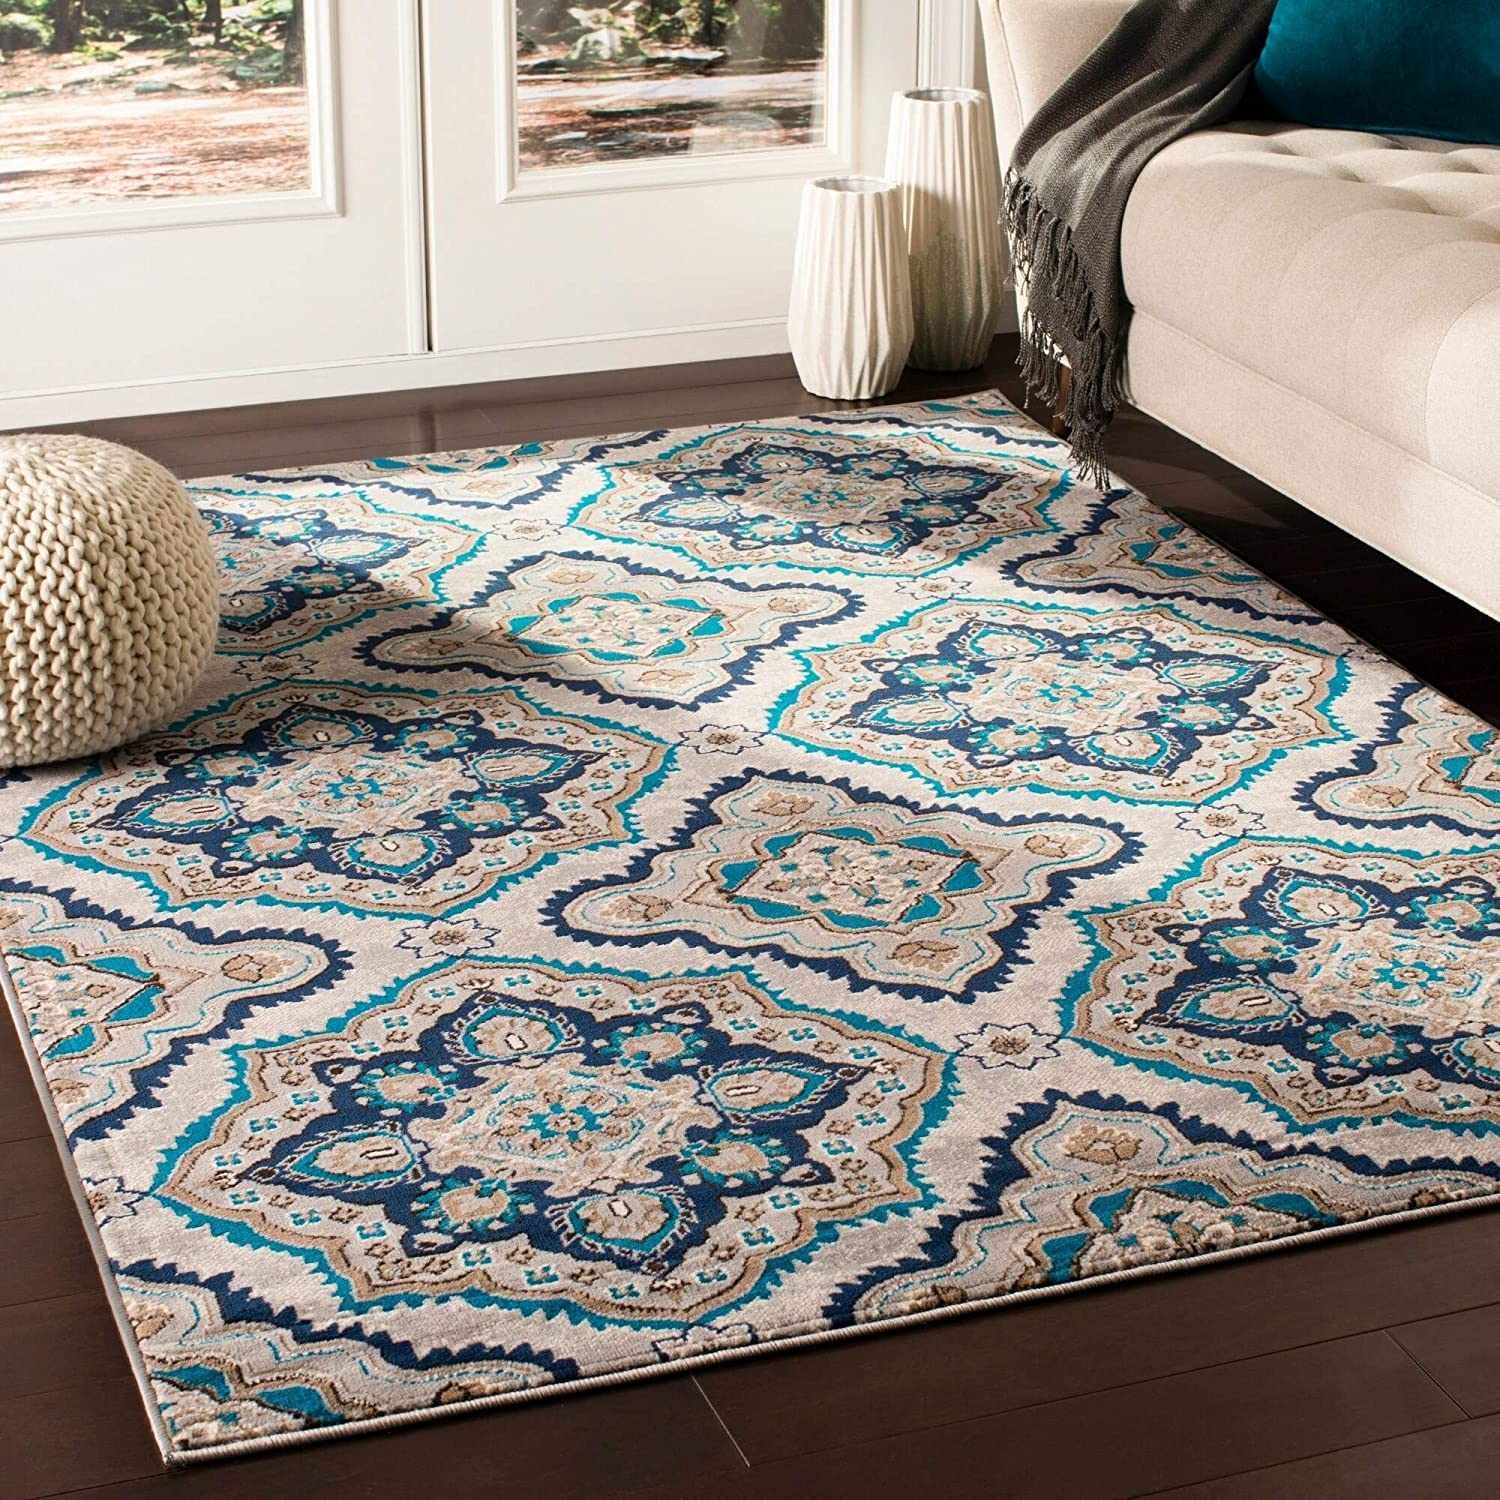 "MISC Transitional Camel Area Rug 5'3"" X 7'3"" Brown Polypropylene Synthetic Latex Free Pet Friendly Stain Resistant"